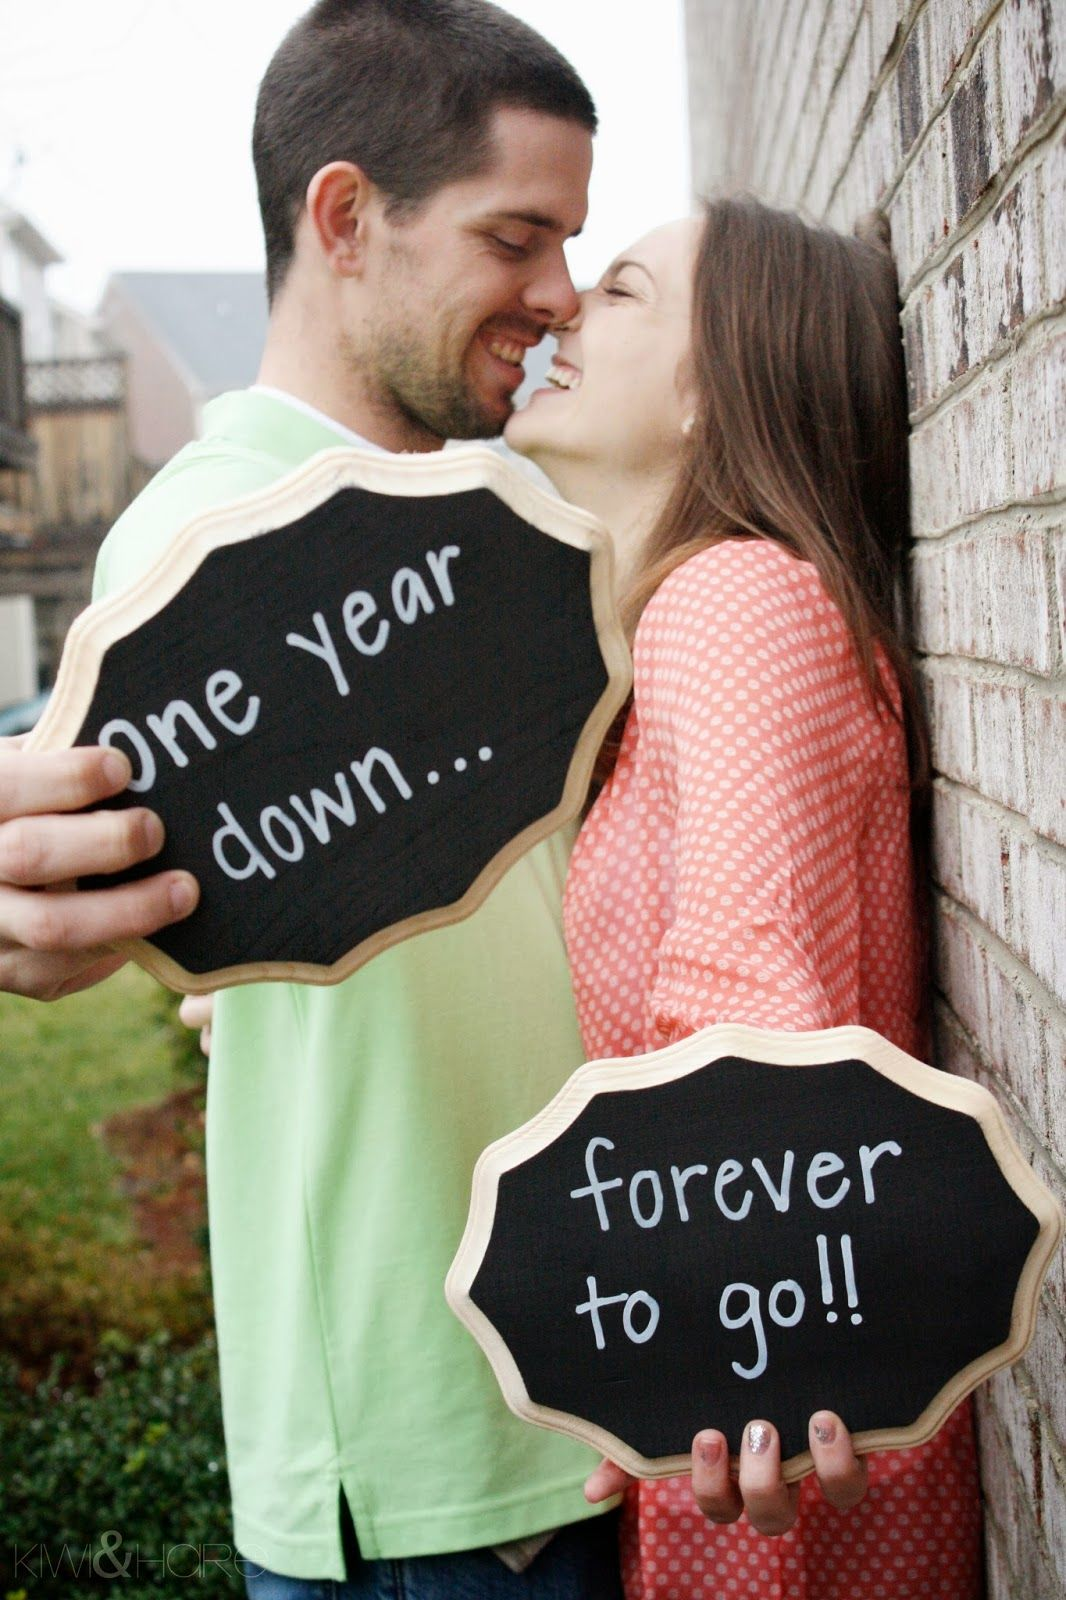 Pin By Spring Heckmann On Anniversary Wedding Anniversary Photos Cute Anniversary Ideas Anniversary Photos